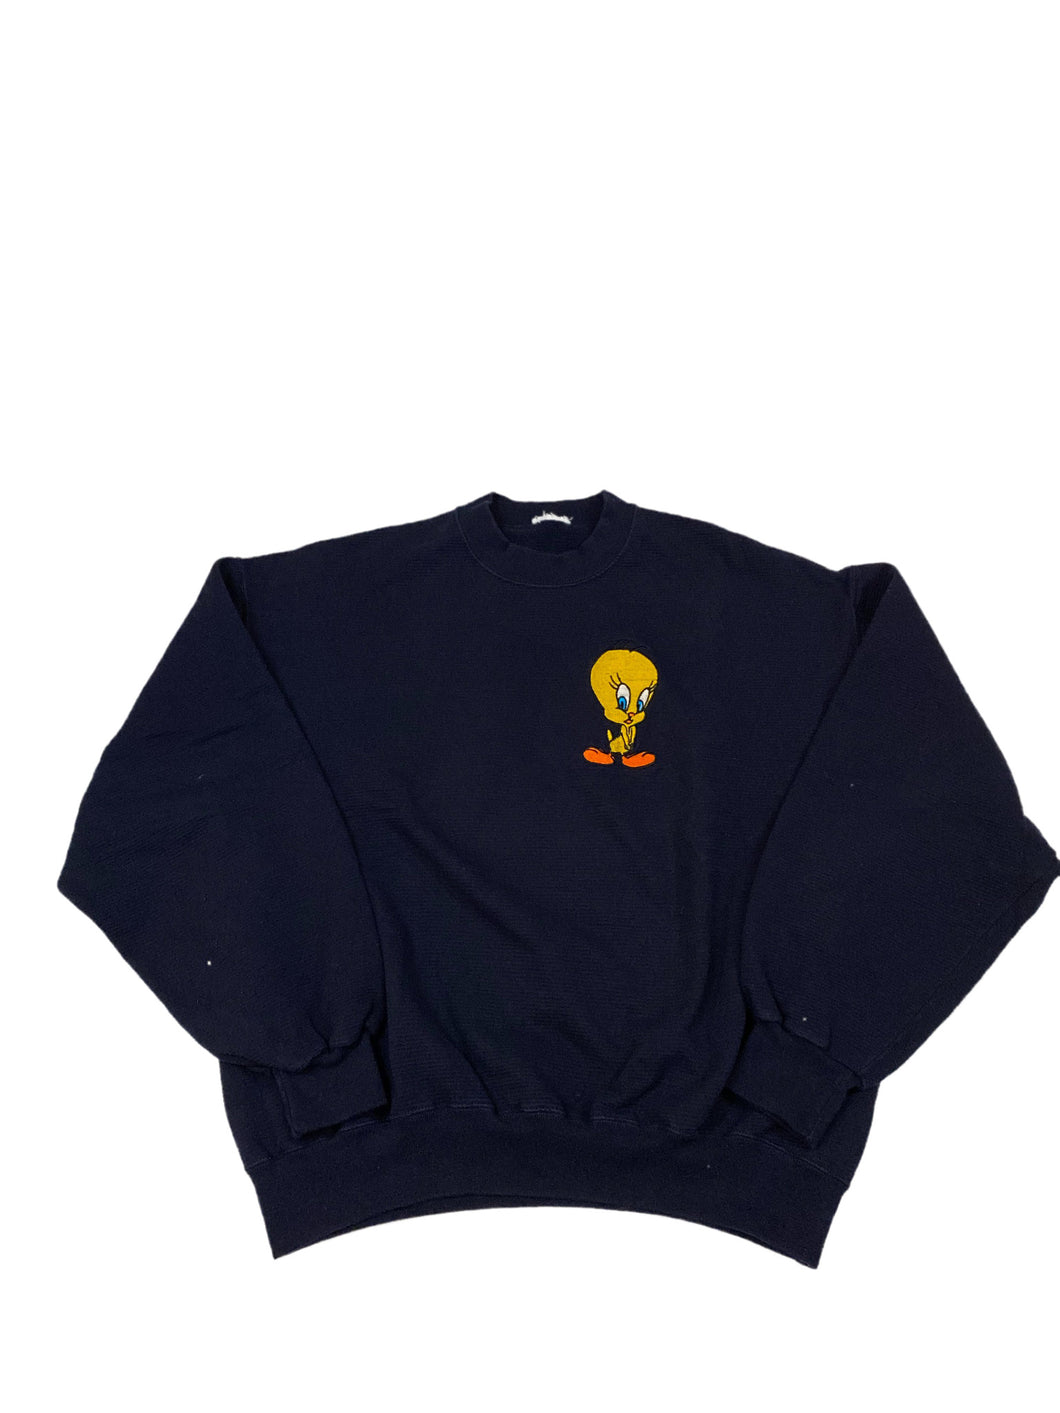 Tweety Embroidered Crewneck